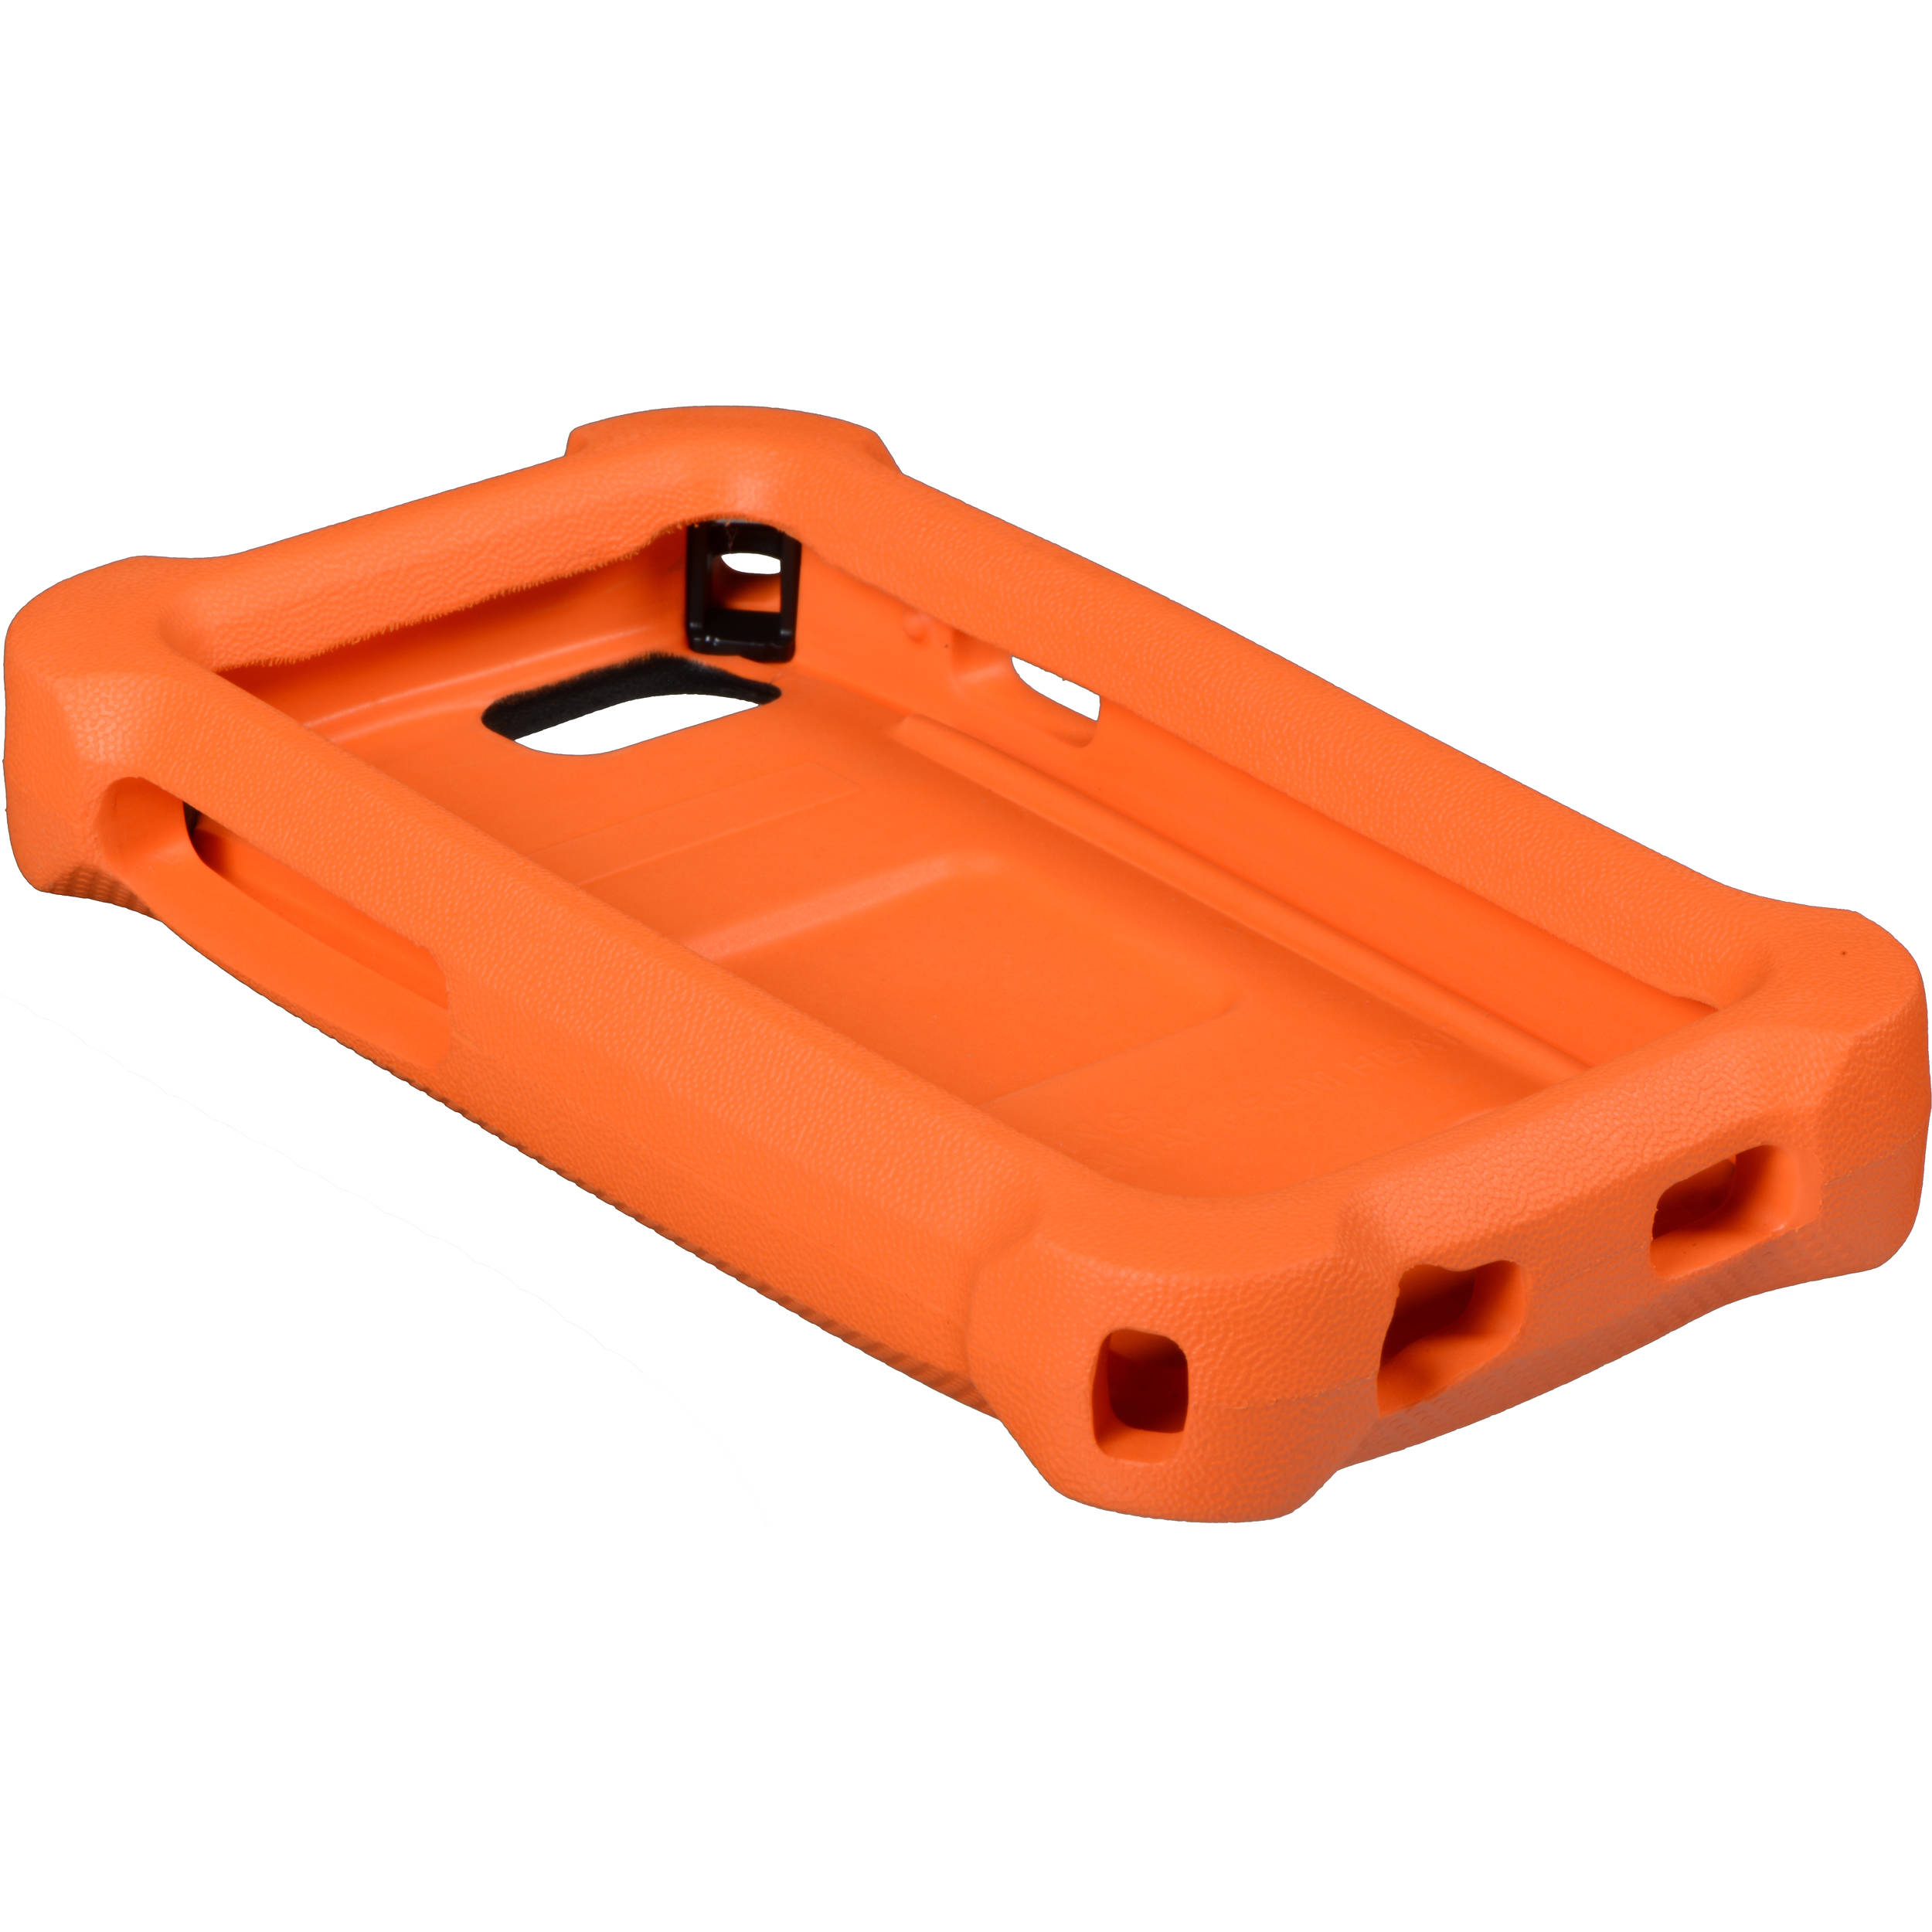 more photos be3d4 5540f LifeProof LifeJacket Case for LifeProof Case for iPhone 6 (Orange)